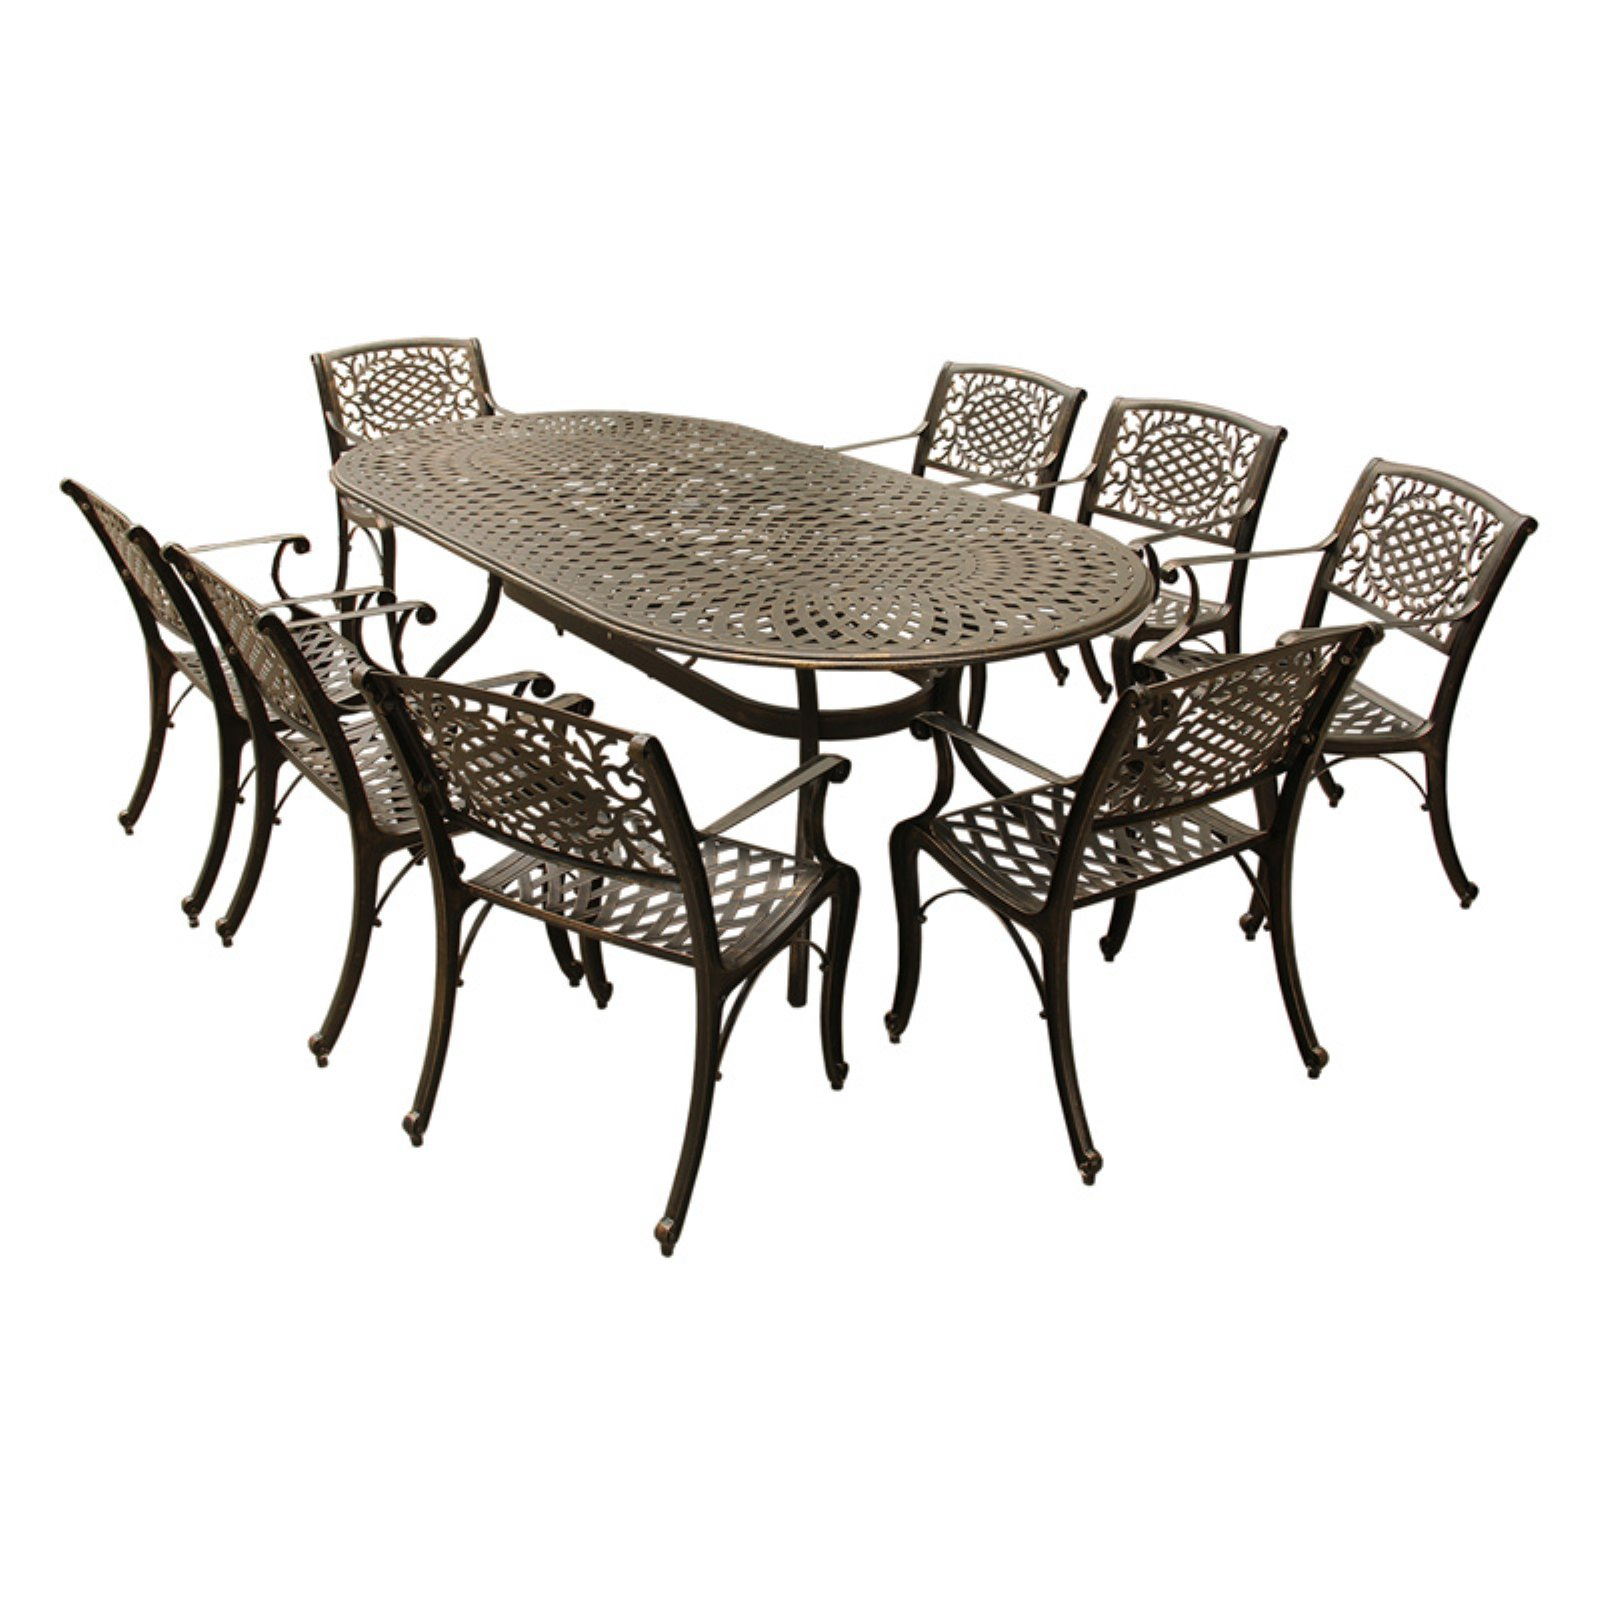 Oakland Living Ornate Mesh Lattice Aluminum 9 Piece Patio Dining Set